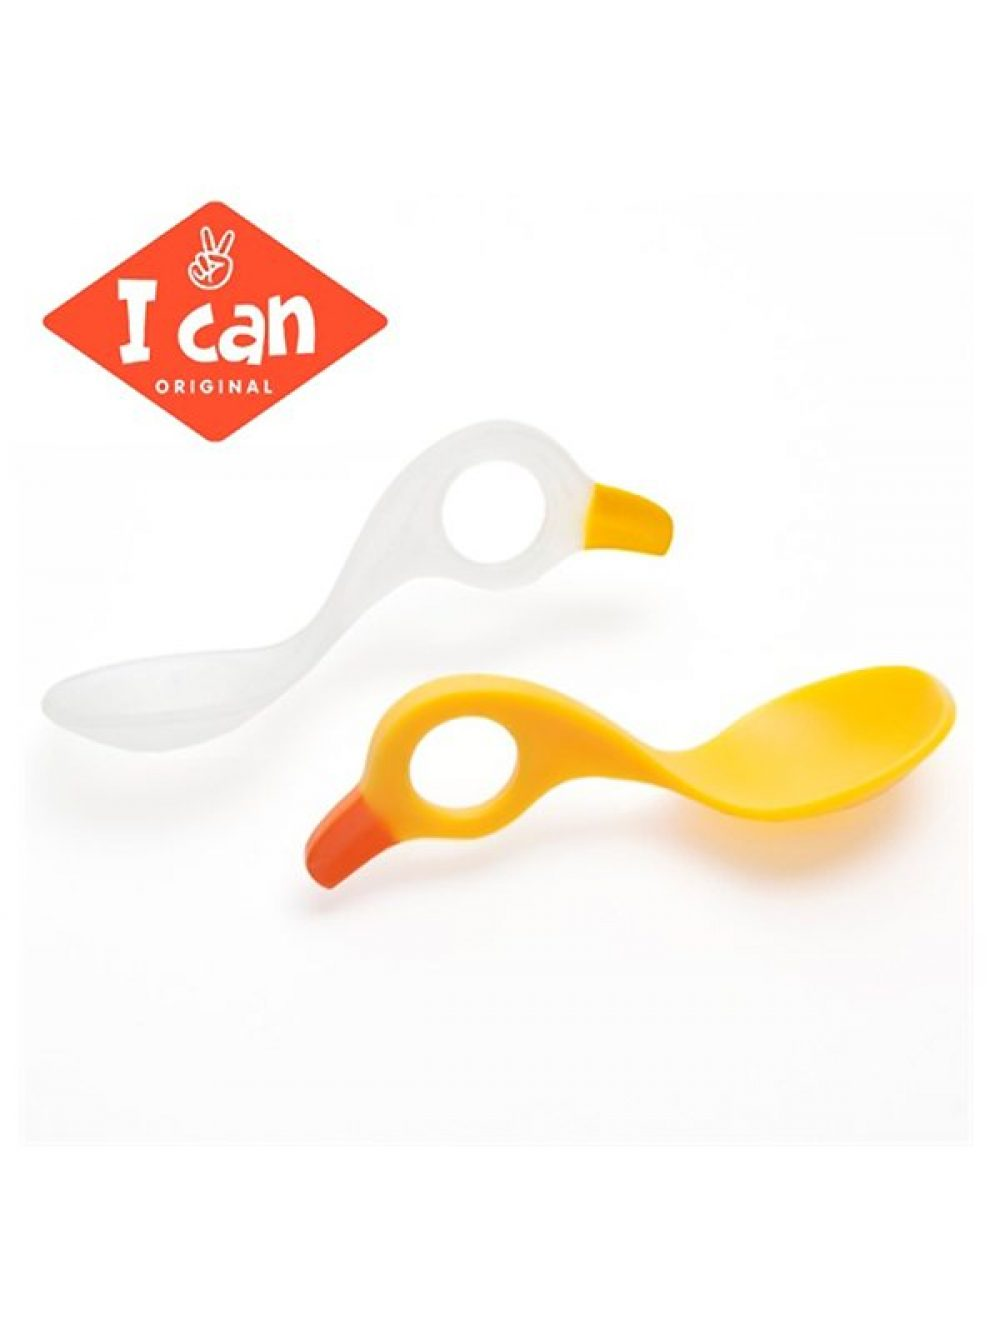 I Can Spoon Multigreppsked 2-pack